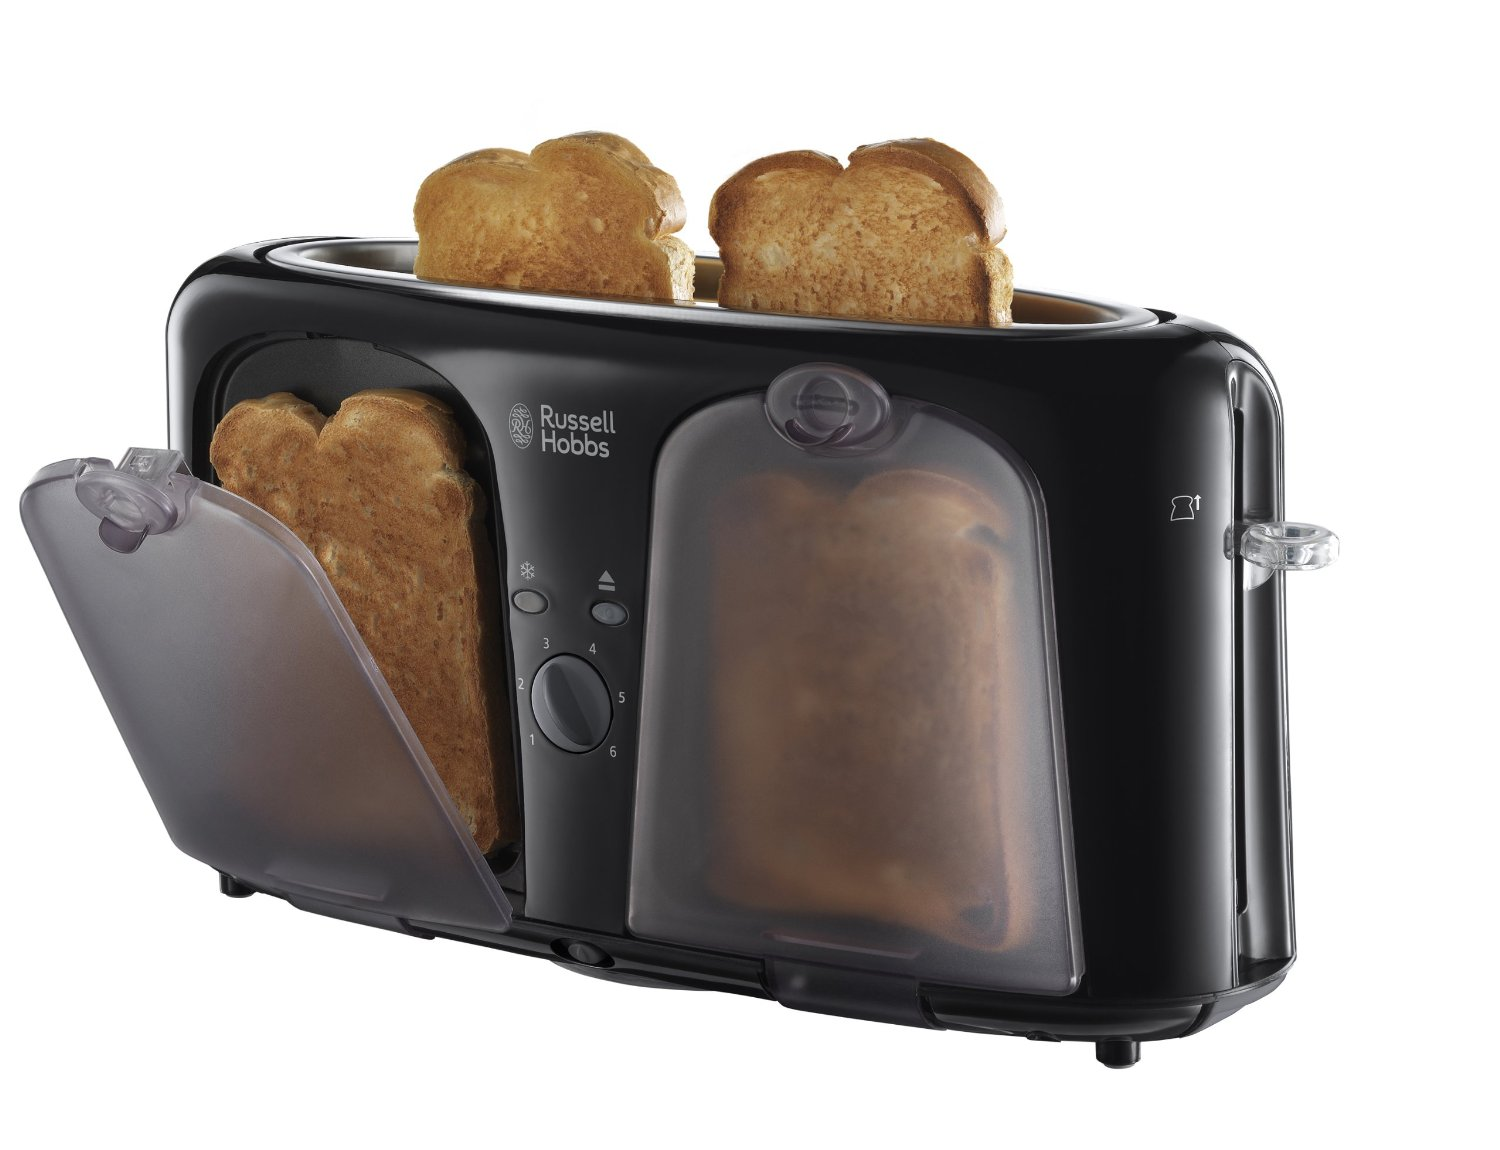 russell hobbs 19990 2 slice easy toaster with keep warm draws black new ebay. Black Bedroom Furniture Sets. Home Design Ideas